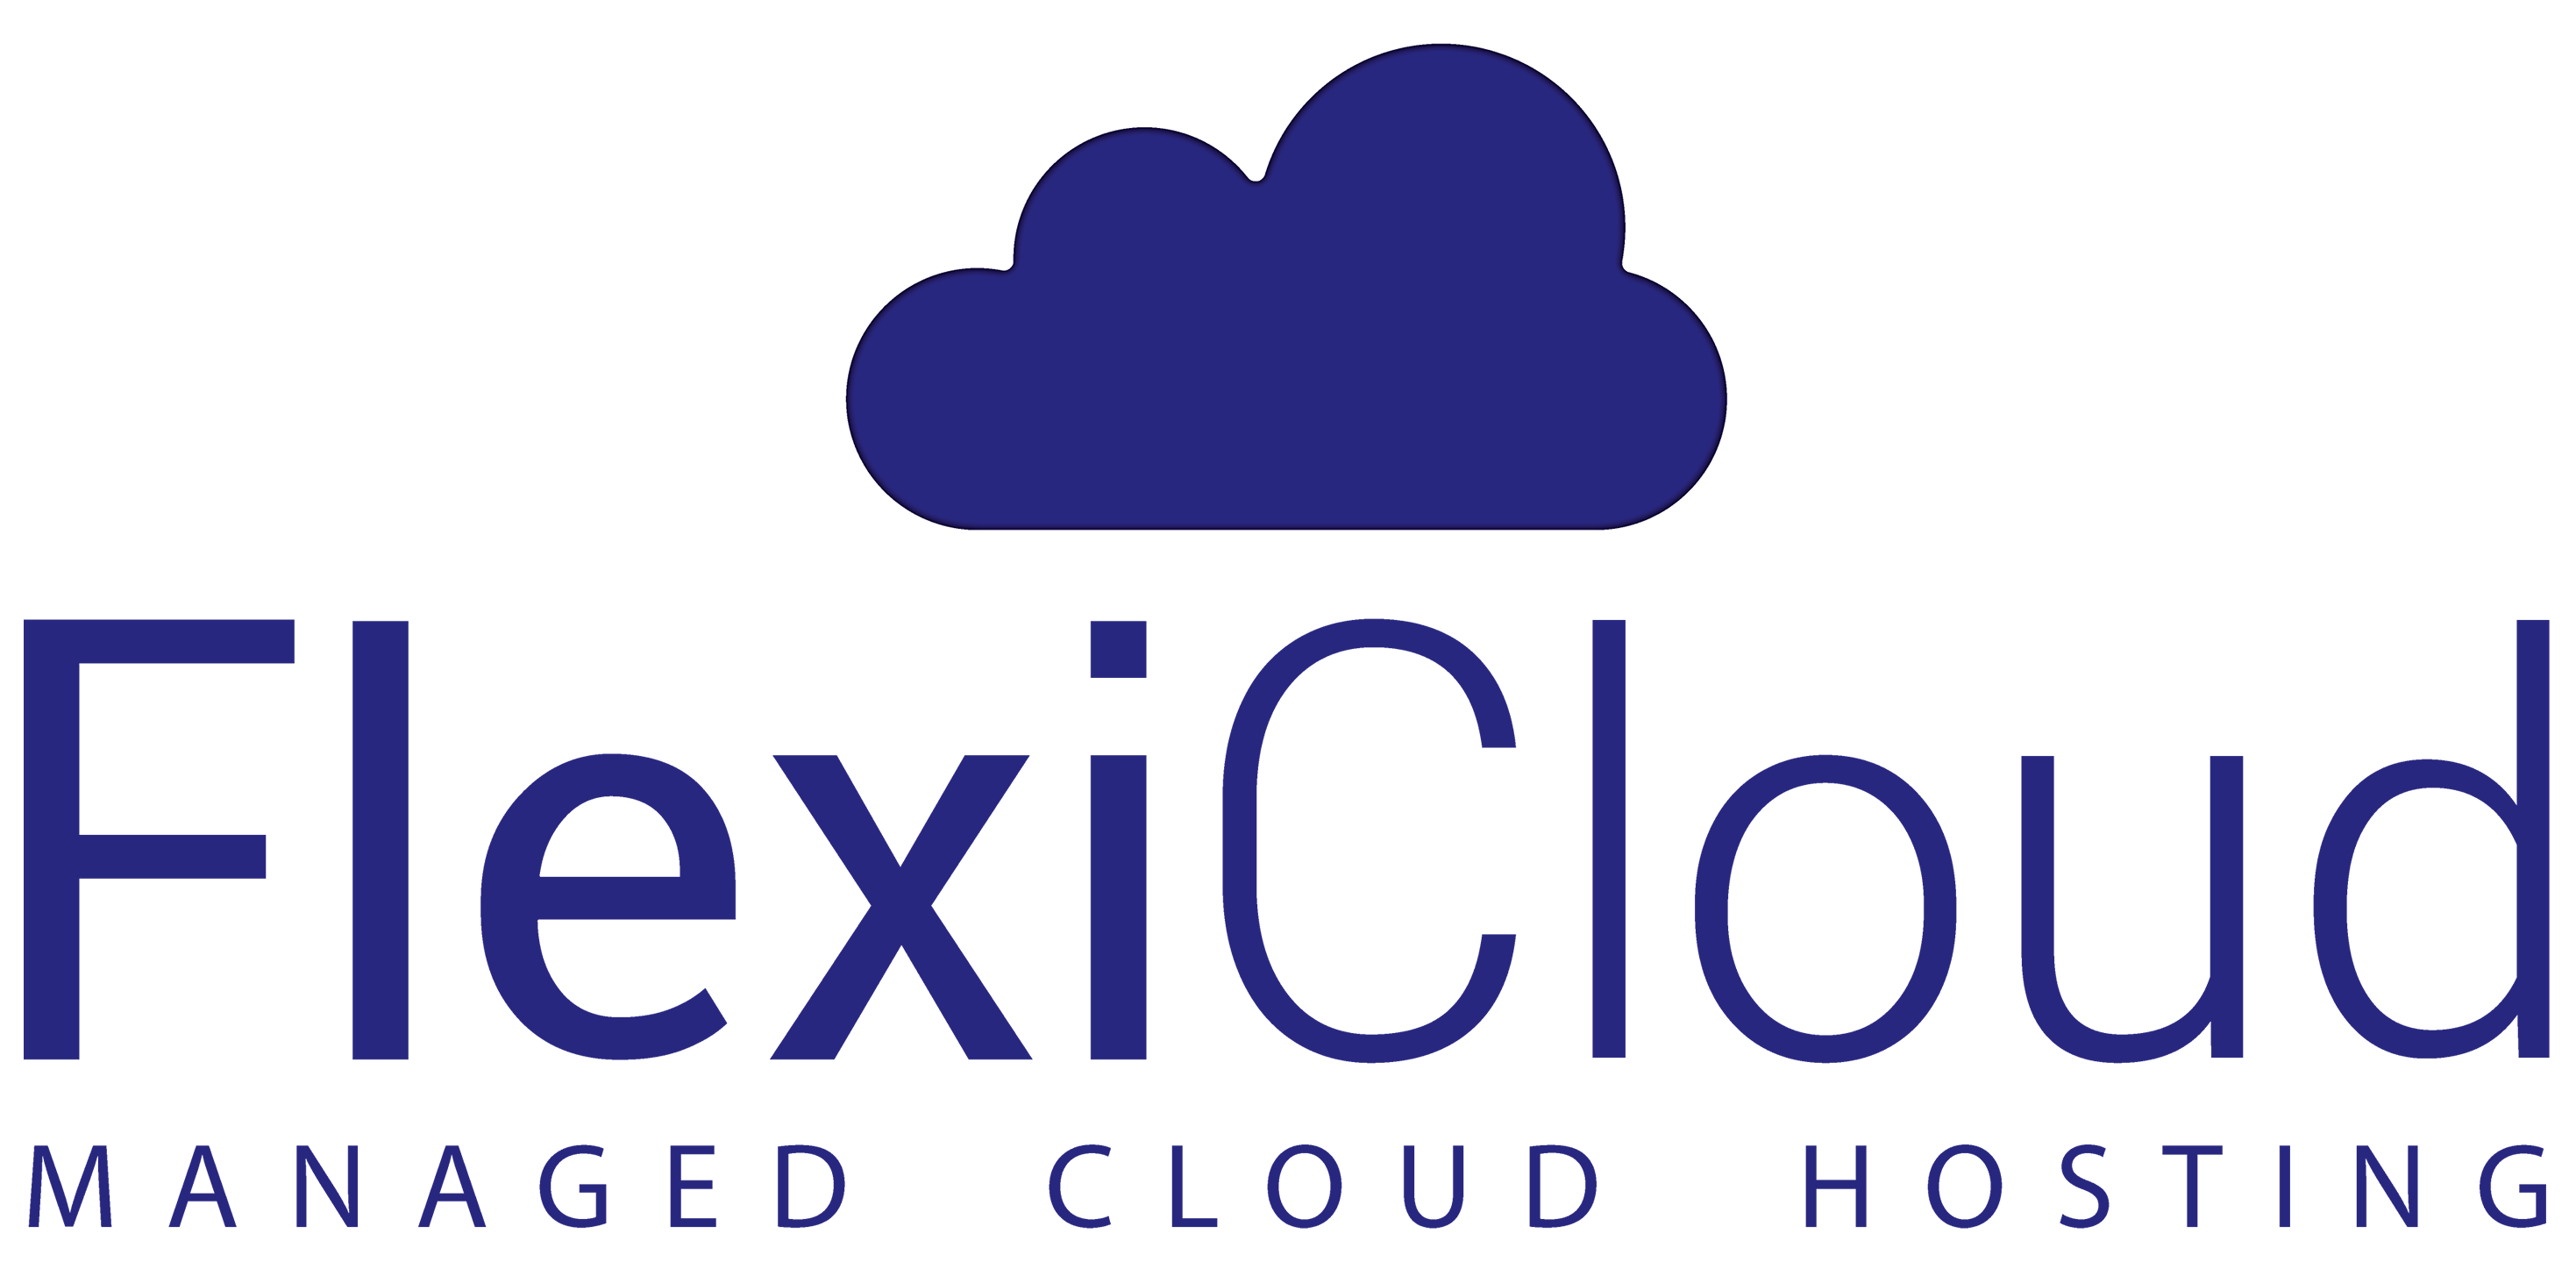 FlexiCloud Hosting